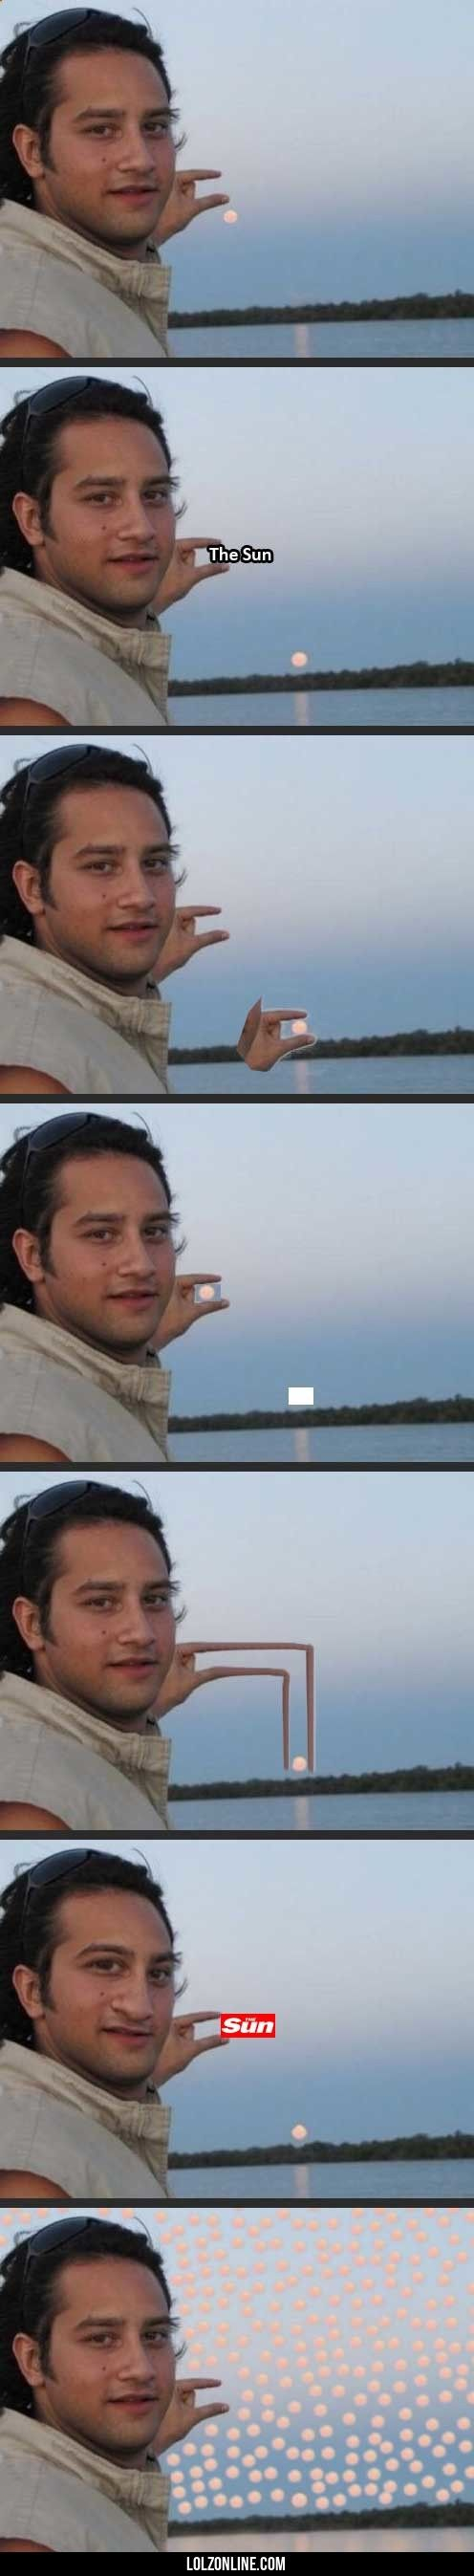 Hey Internet can you please photoshop the sun between my fingers?#funny #lol #lolzonline